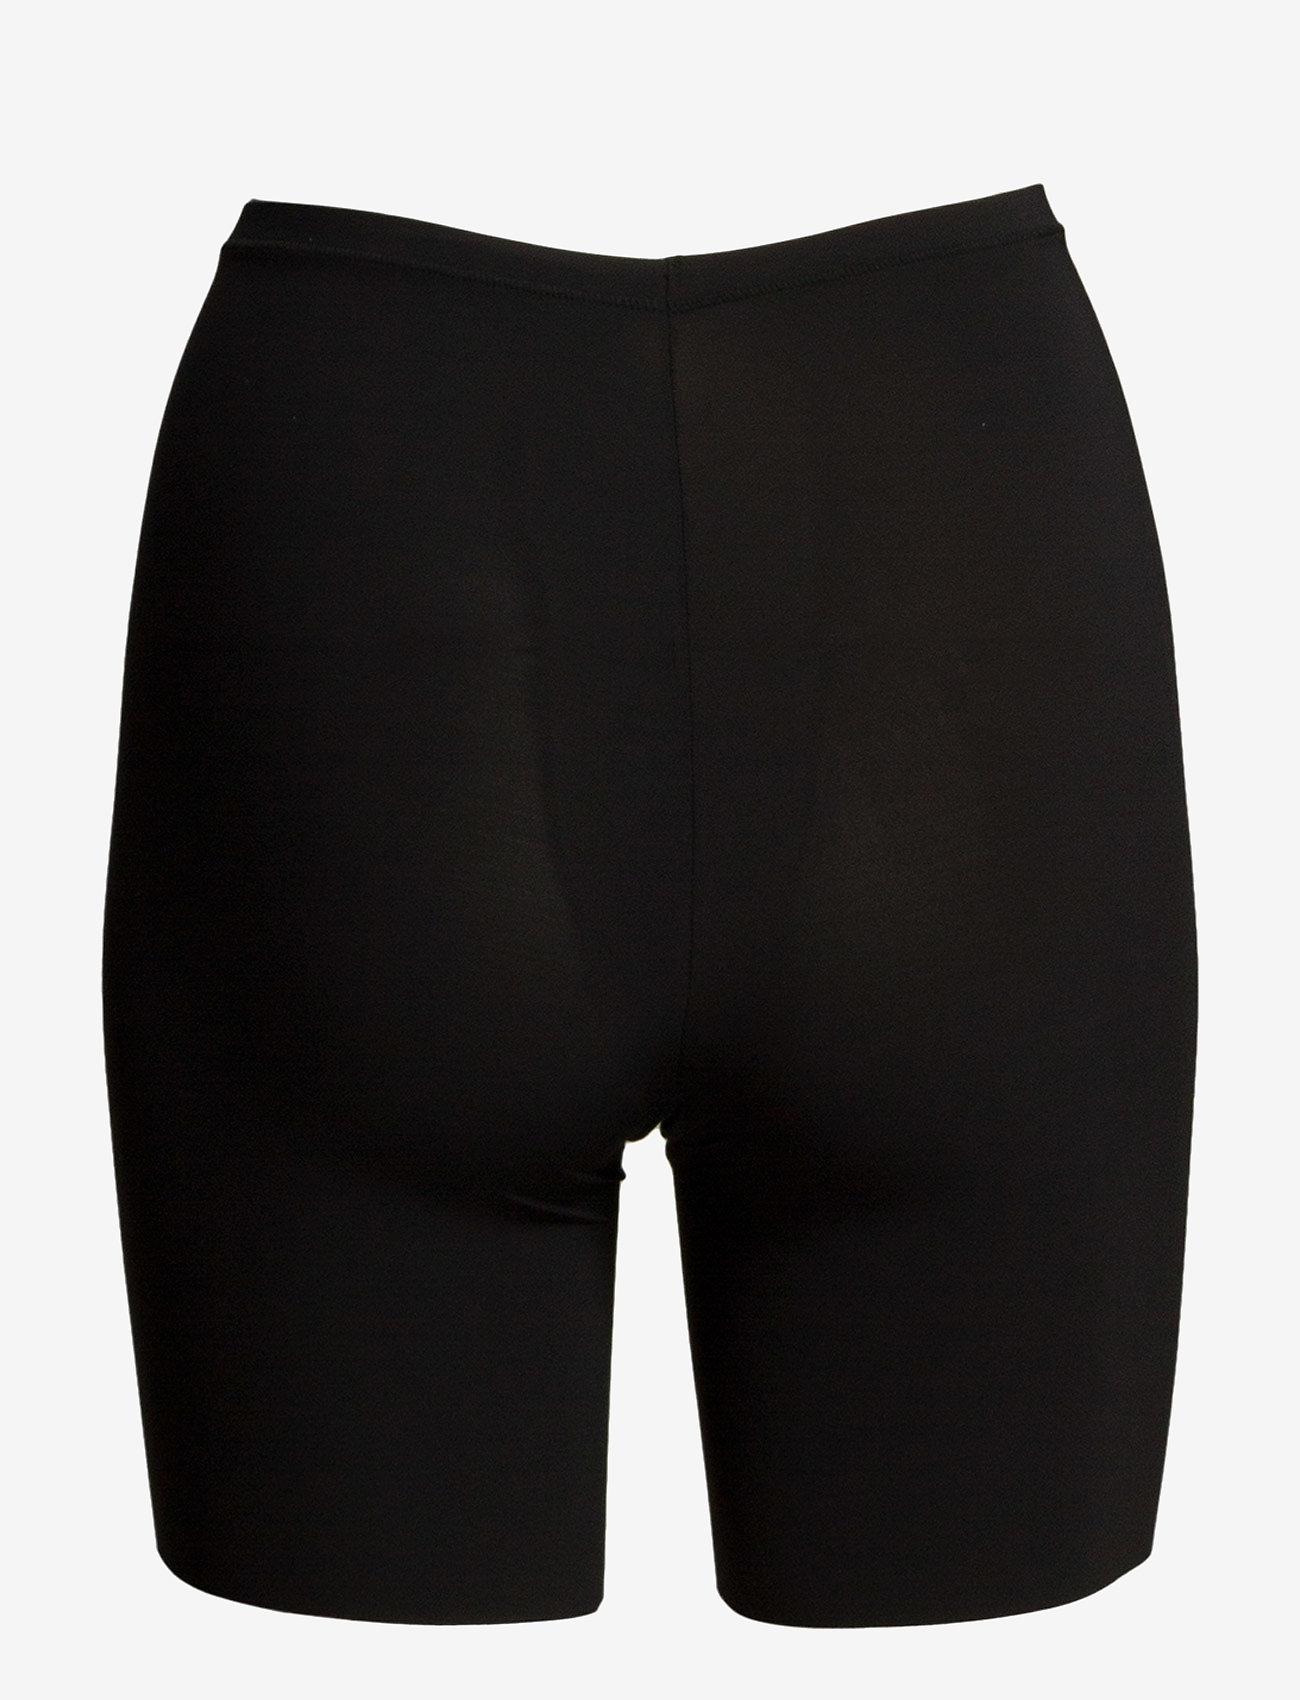 Maidenform - SLEEK SMOOTHERS - bottoms - black - 1